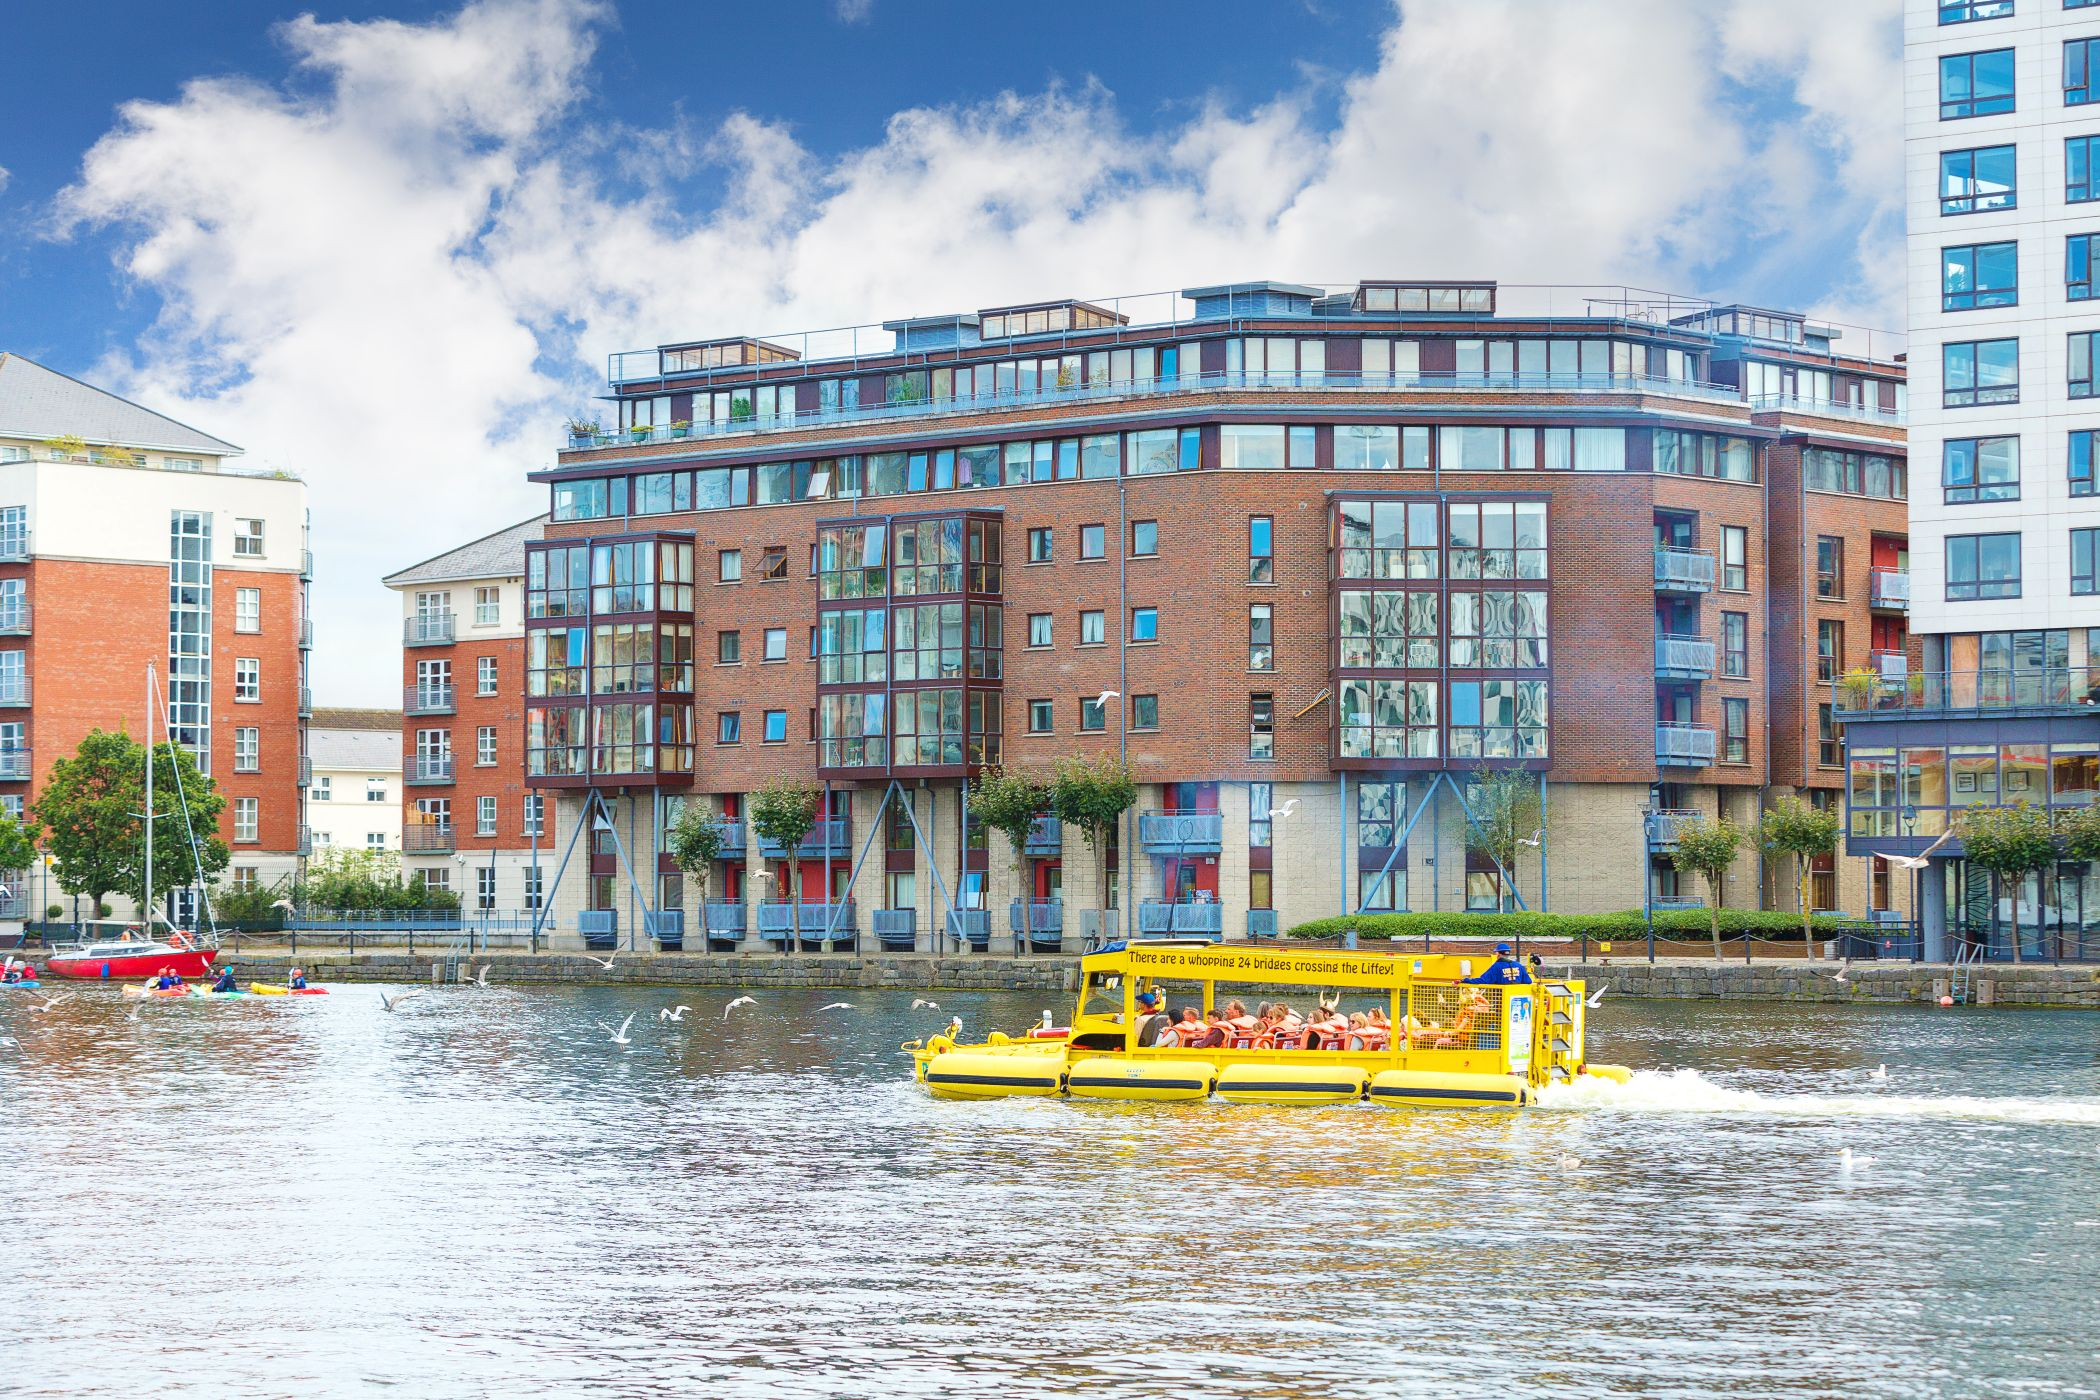 186 The George, Charlotte Quay Dock, Grand Canal Dock, Dublin 4